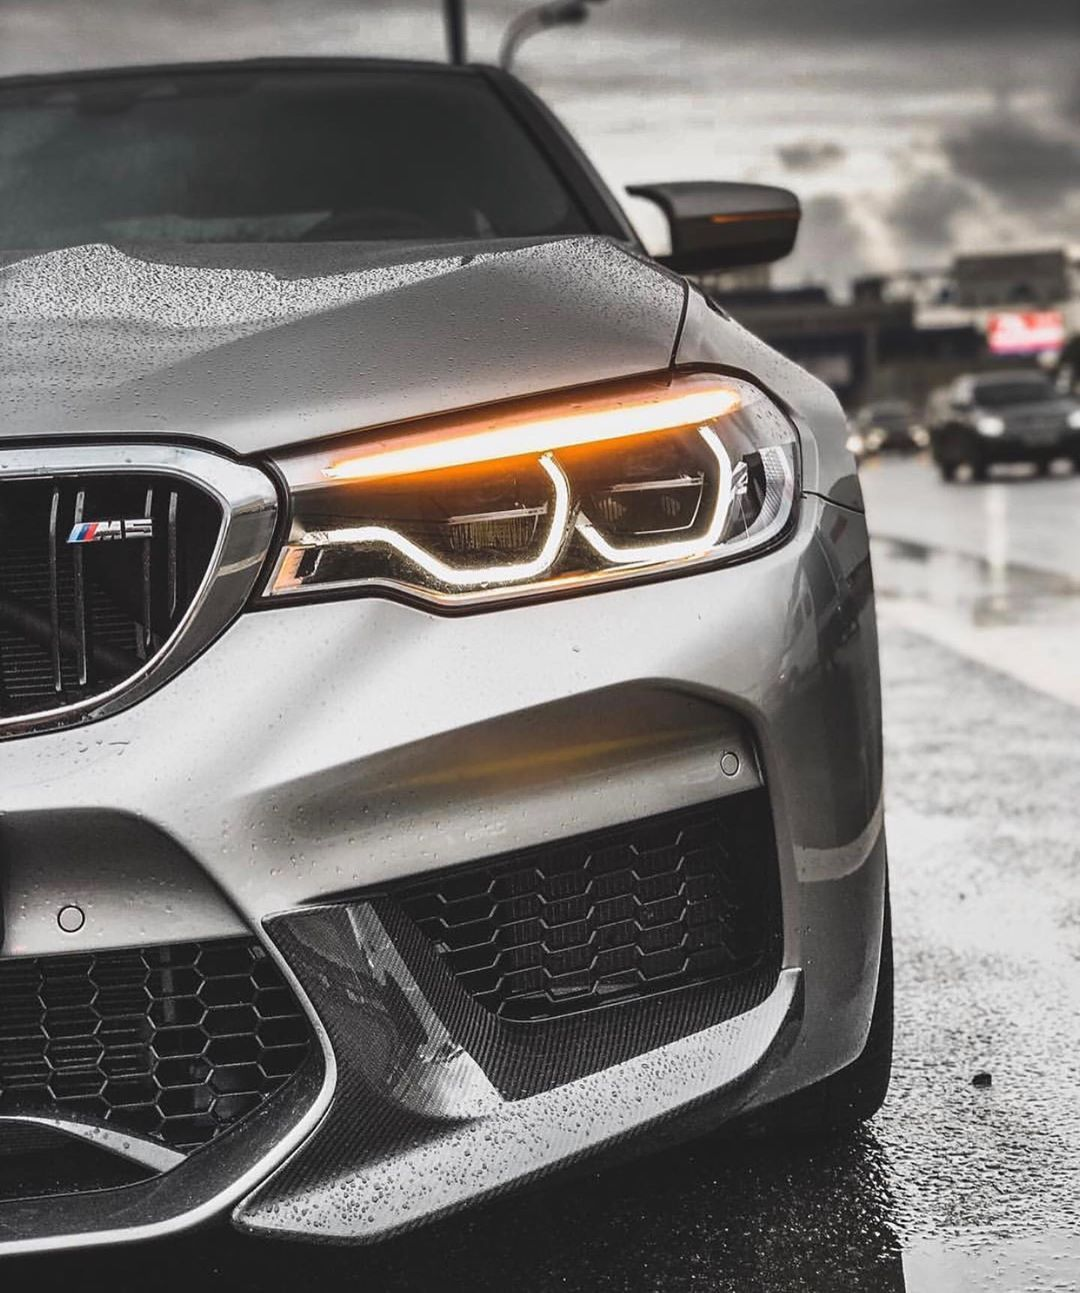 Click On The Picture For More Bmw M5 F90 Follow Bmwtrend Bmwtrend Bmwtrend Bmwtrend Bmwtrend Beamer Bimmer Bmw Bmw M5 Bmw Bmw Wallpapers